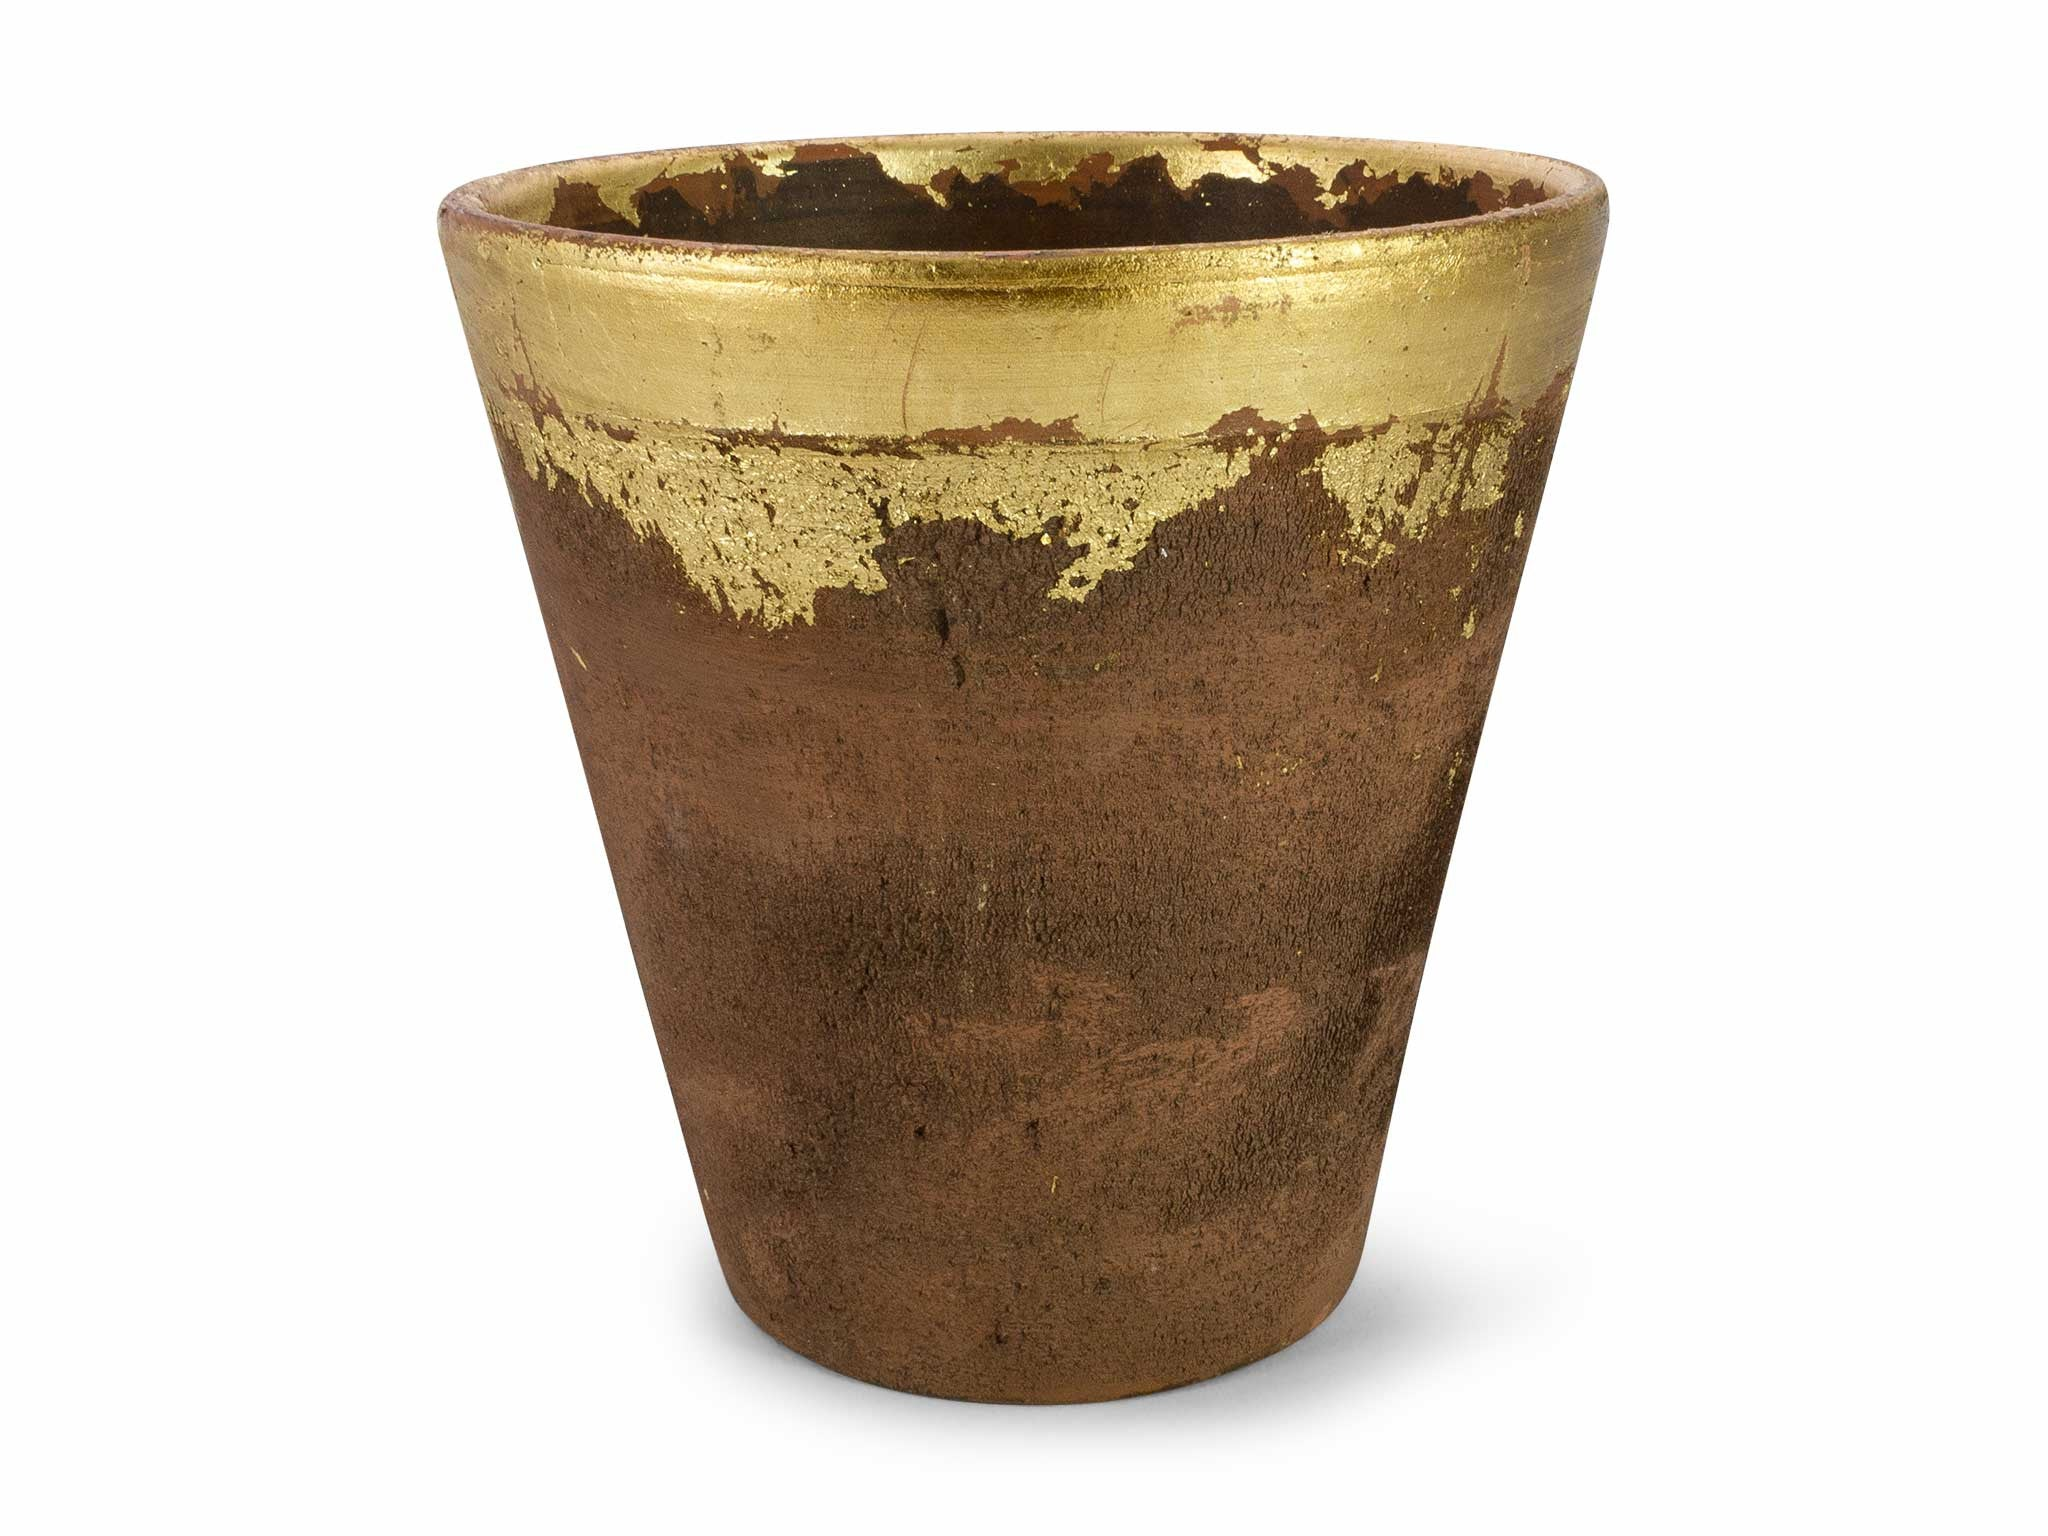 online pots image decor decorative and with stock clipping plants small path